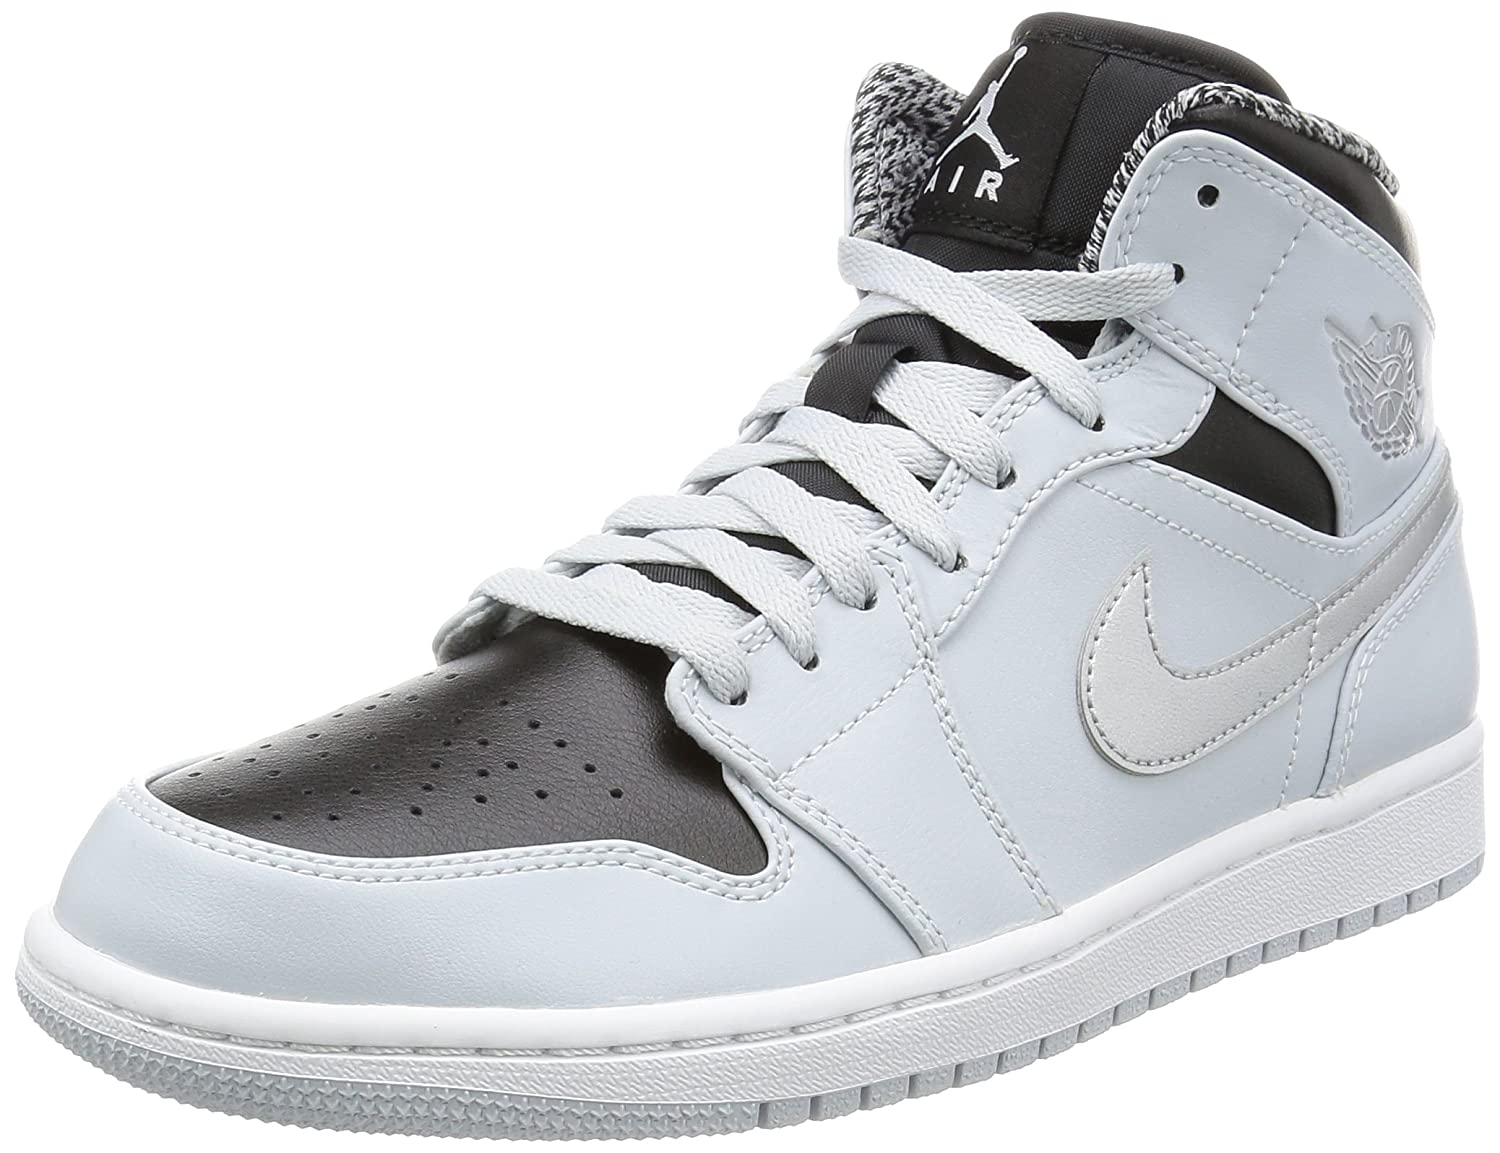 buy online cf3a9 58fa4 Amazon.com  Jordan Nike Air 1 MID Sneaker (12 D(M) US, Gray Black Silver White)   Sports   Outdoors